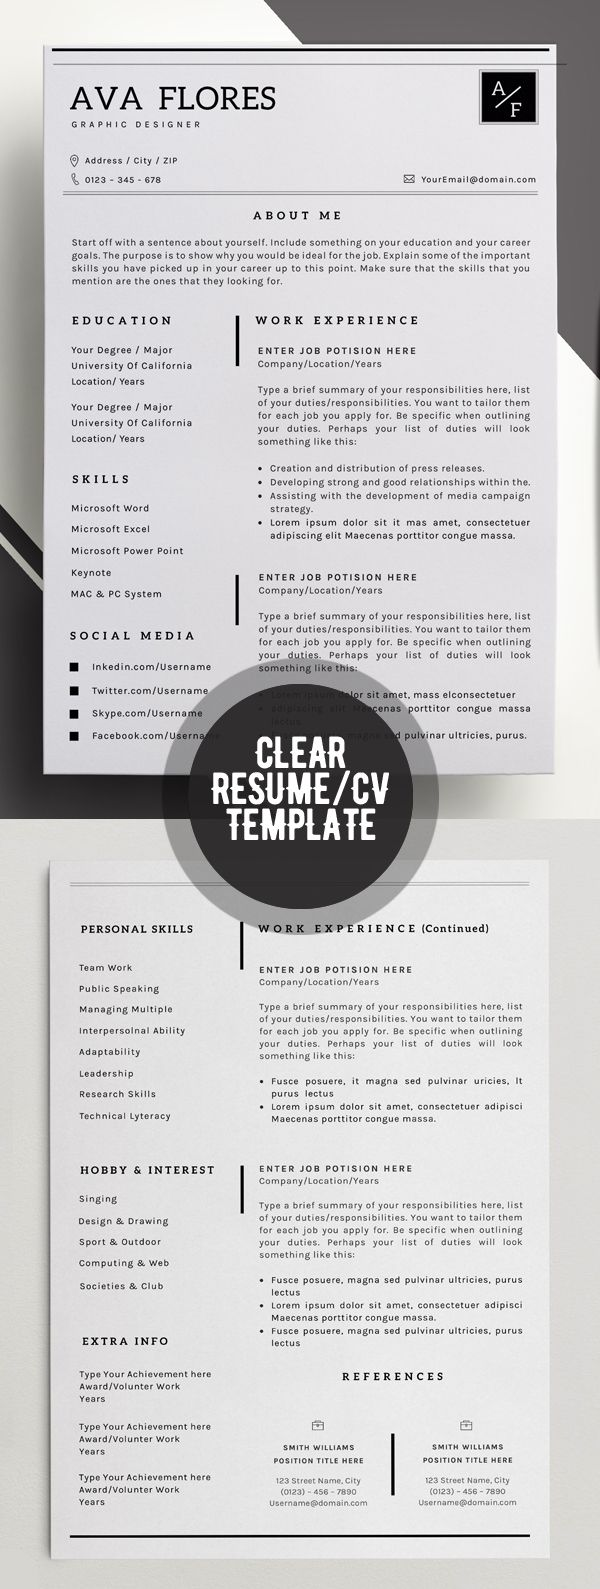 600 best Resume Design images on Pinterest | Resume, Curriculum and ...